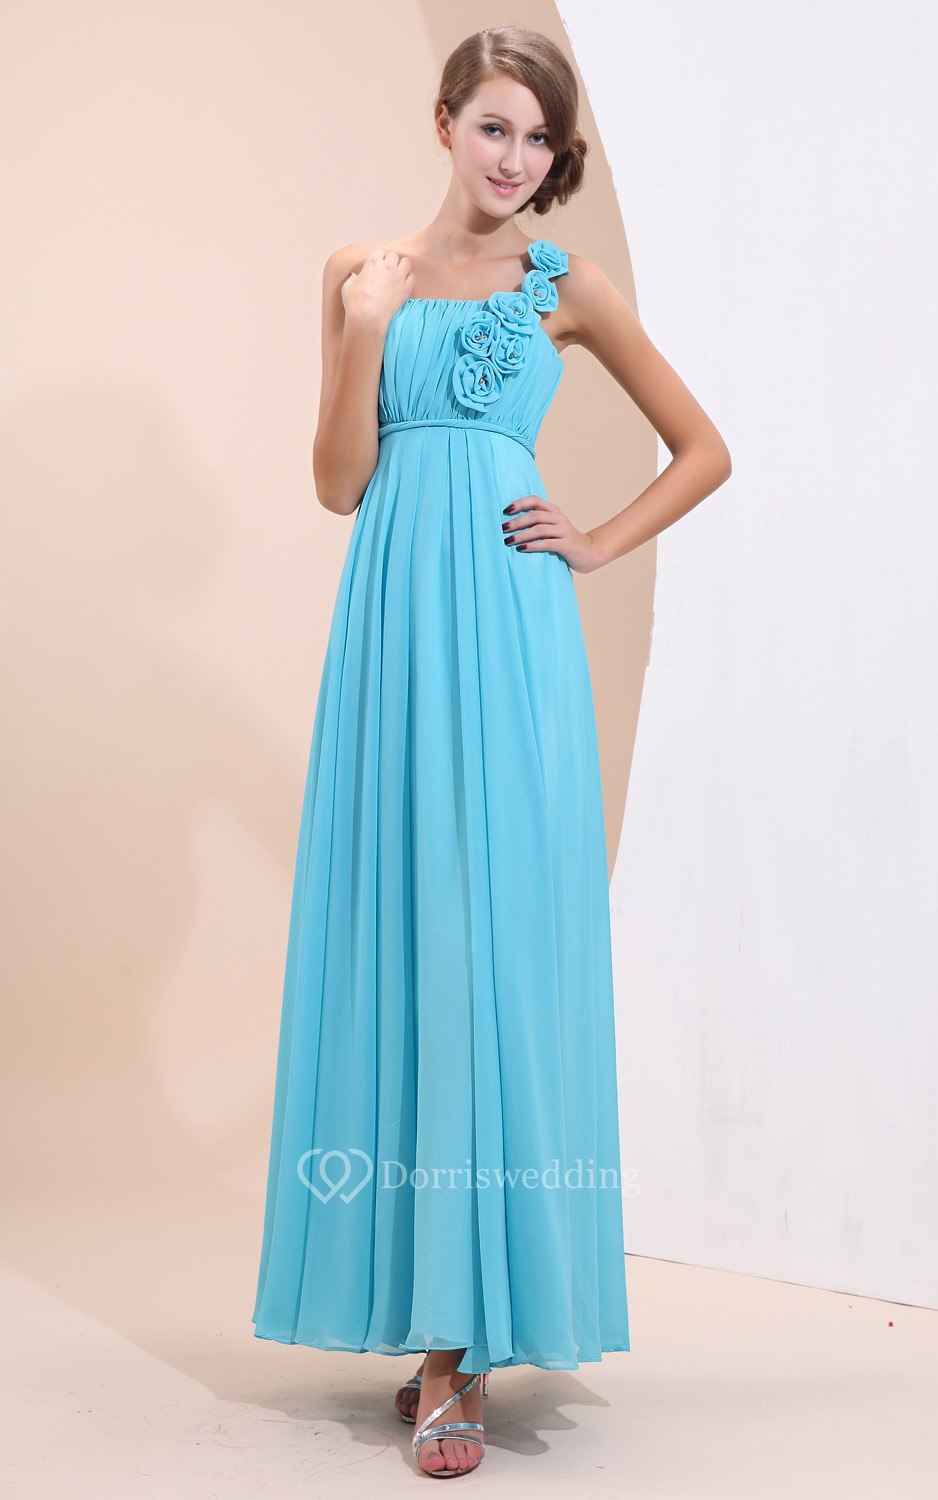 Simple ankle length chiffon dress with floral strap for Simple ankle length wedding dresses